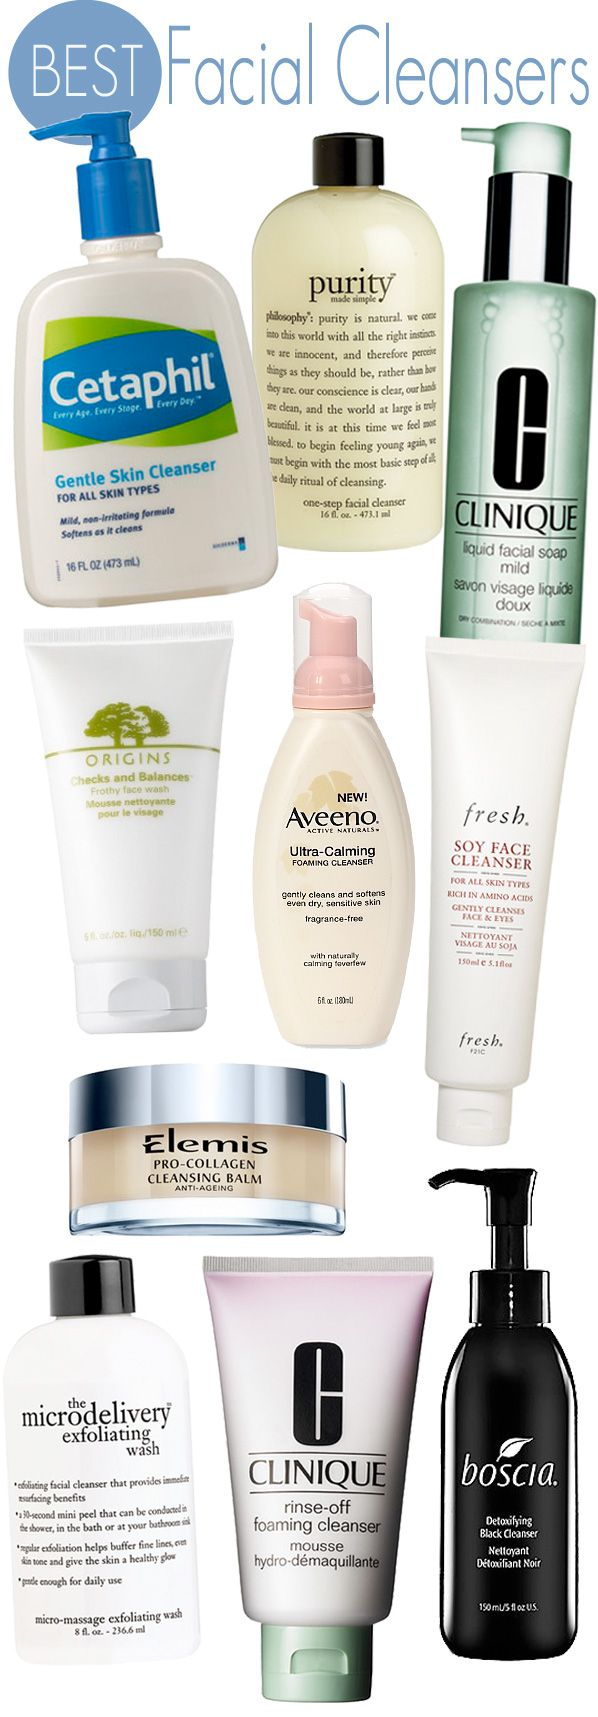 "Best Facial Cleansers, my personal fav Philosophy's ""Purity."""